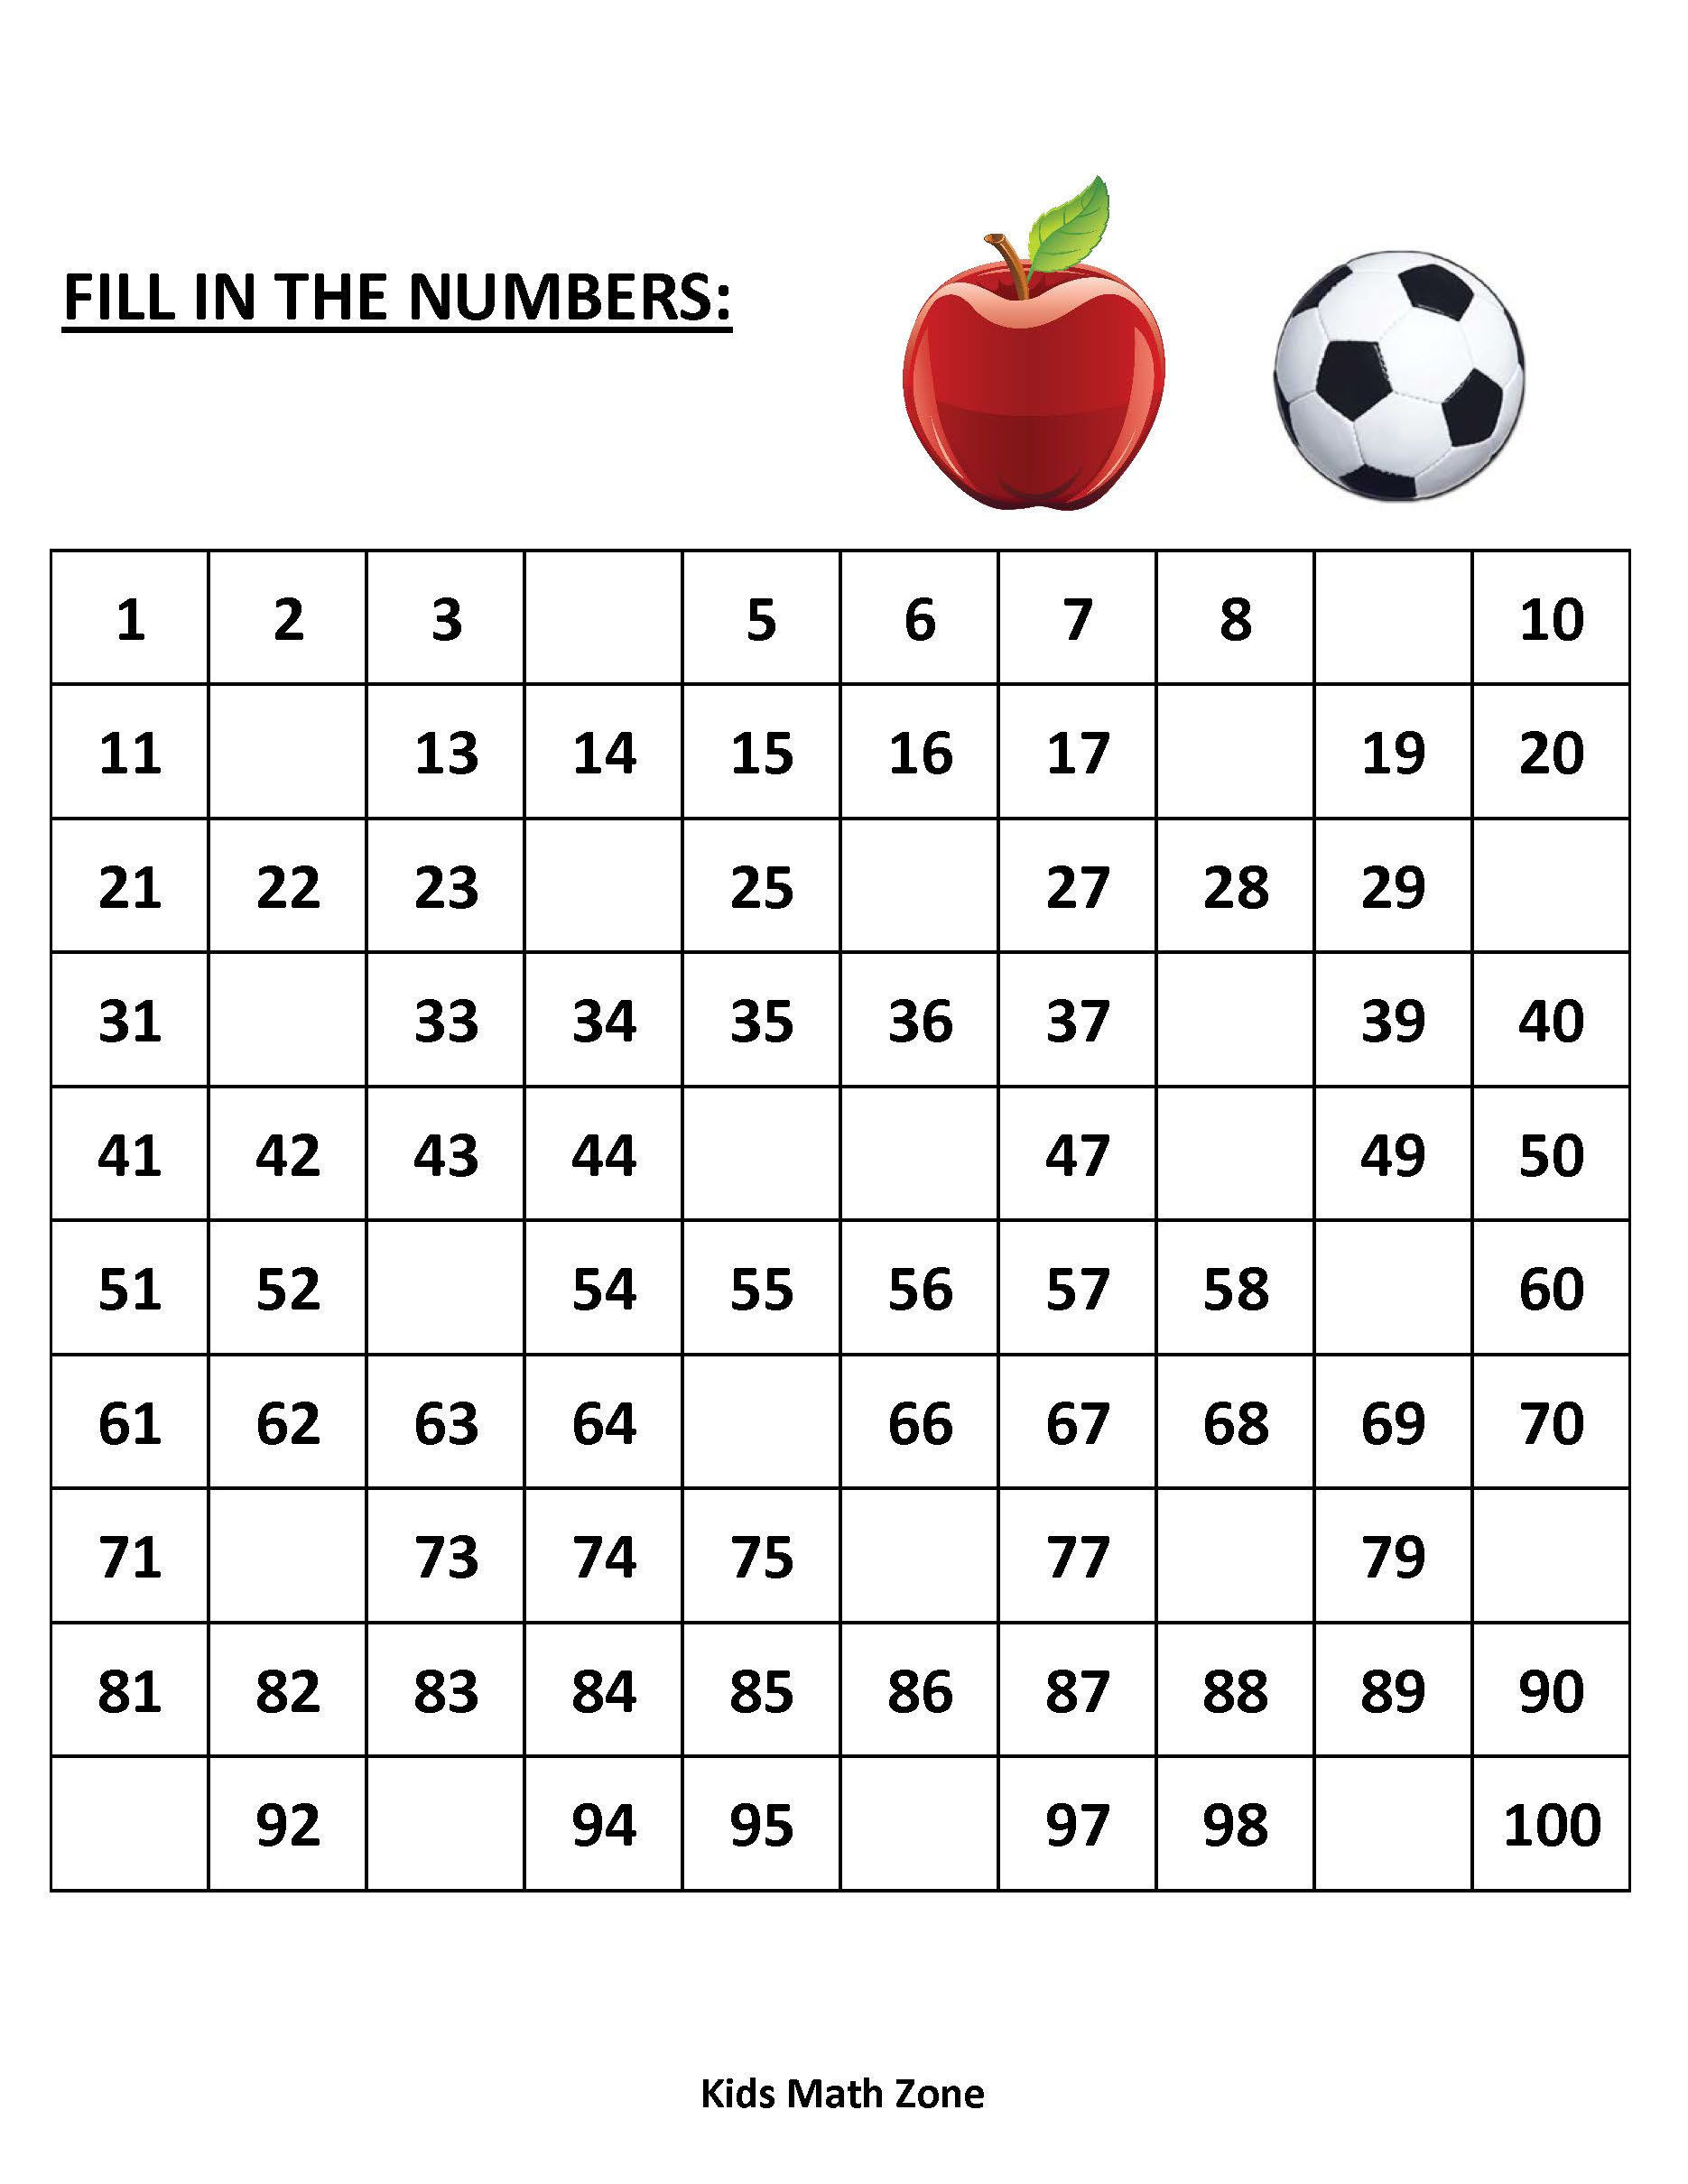 Kindergarten Math Worksheet Pdf Missing Numbers 1 to 100 10 Printable Worksheets Pdf